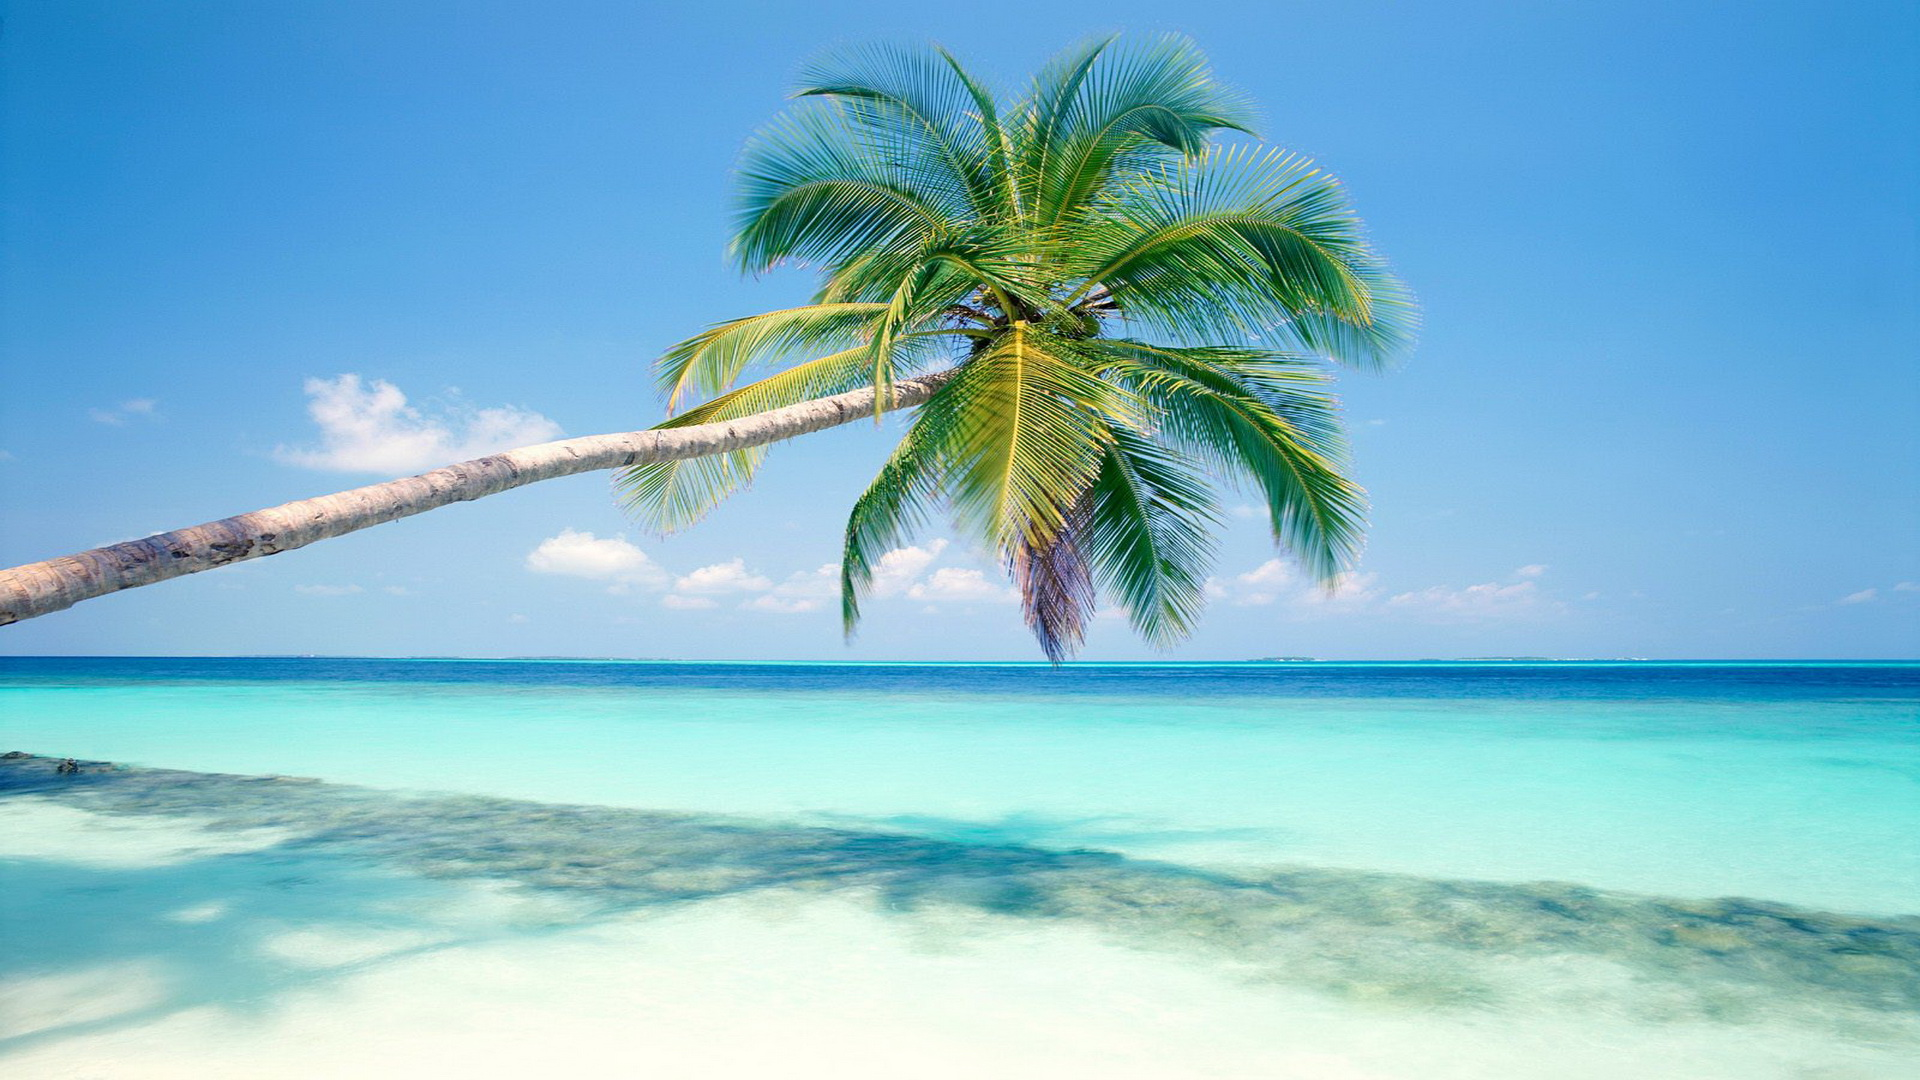 tropical island HD Wallpapers Wallpaper HD Desktop Wallpapers 1920 1920x1080